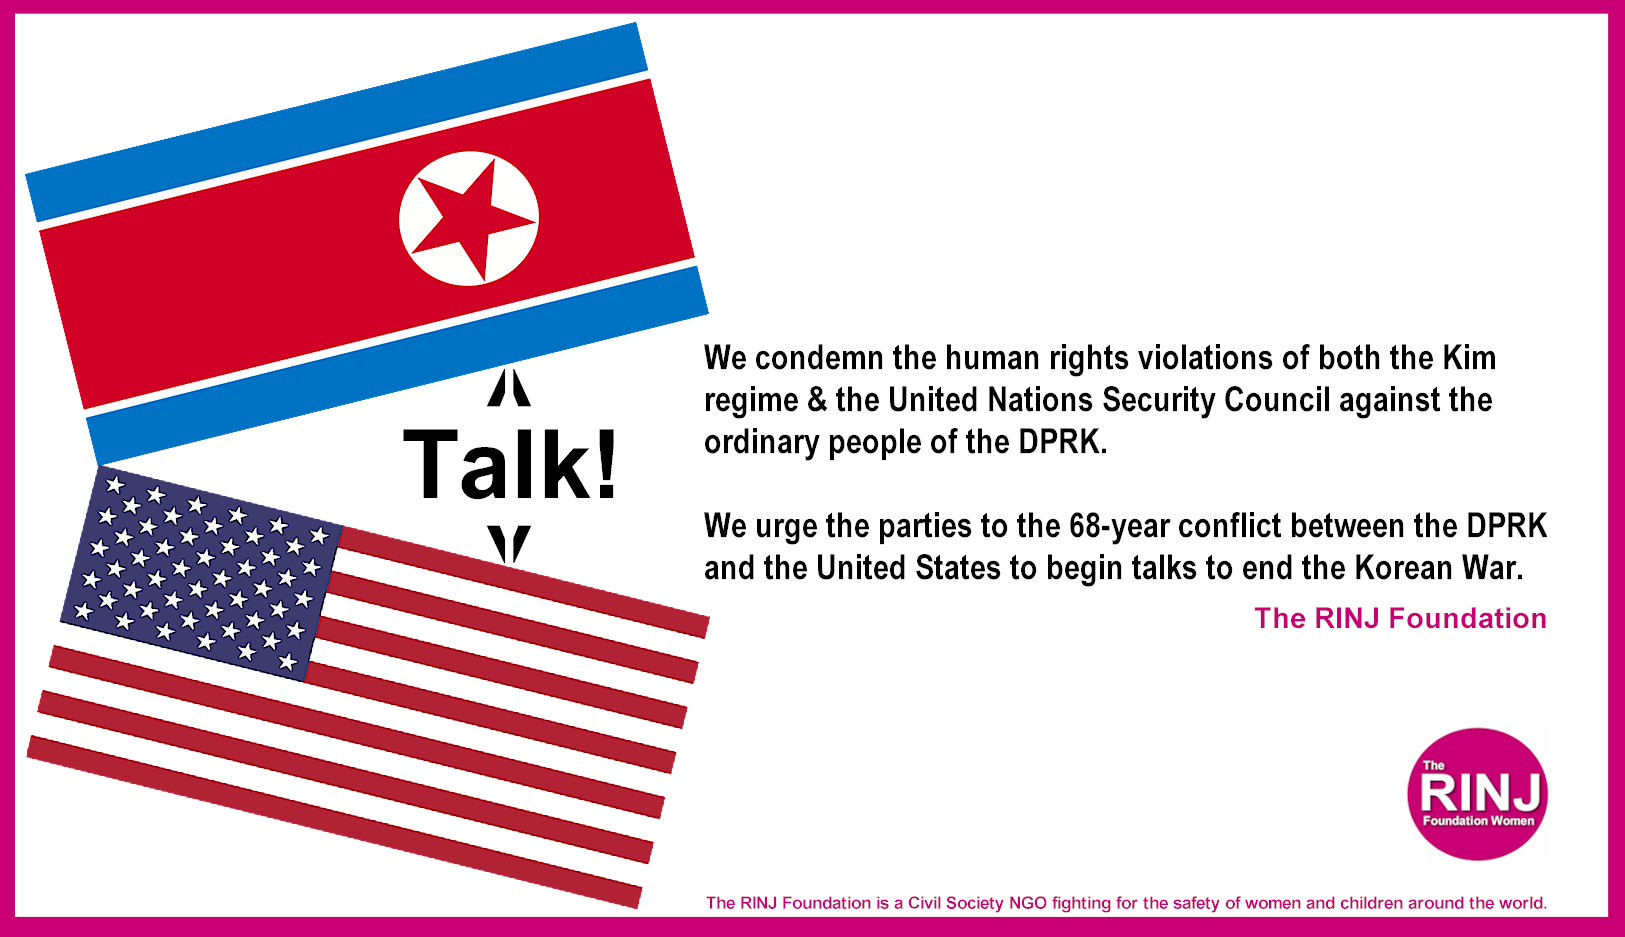 The RINJ Foundation Women Condem the human rights violations by USA and Kim Regime against the ordinary people of the DPRK